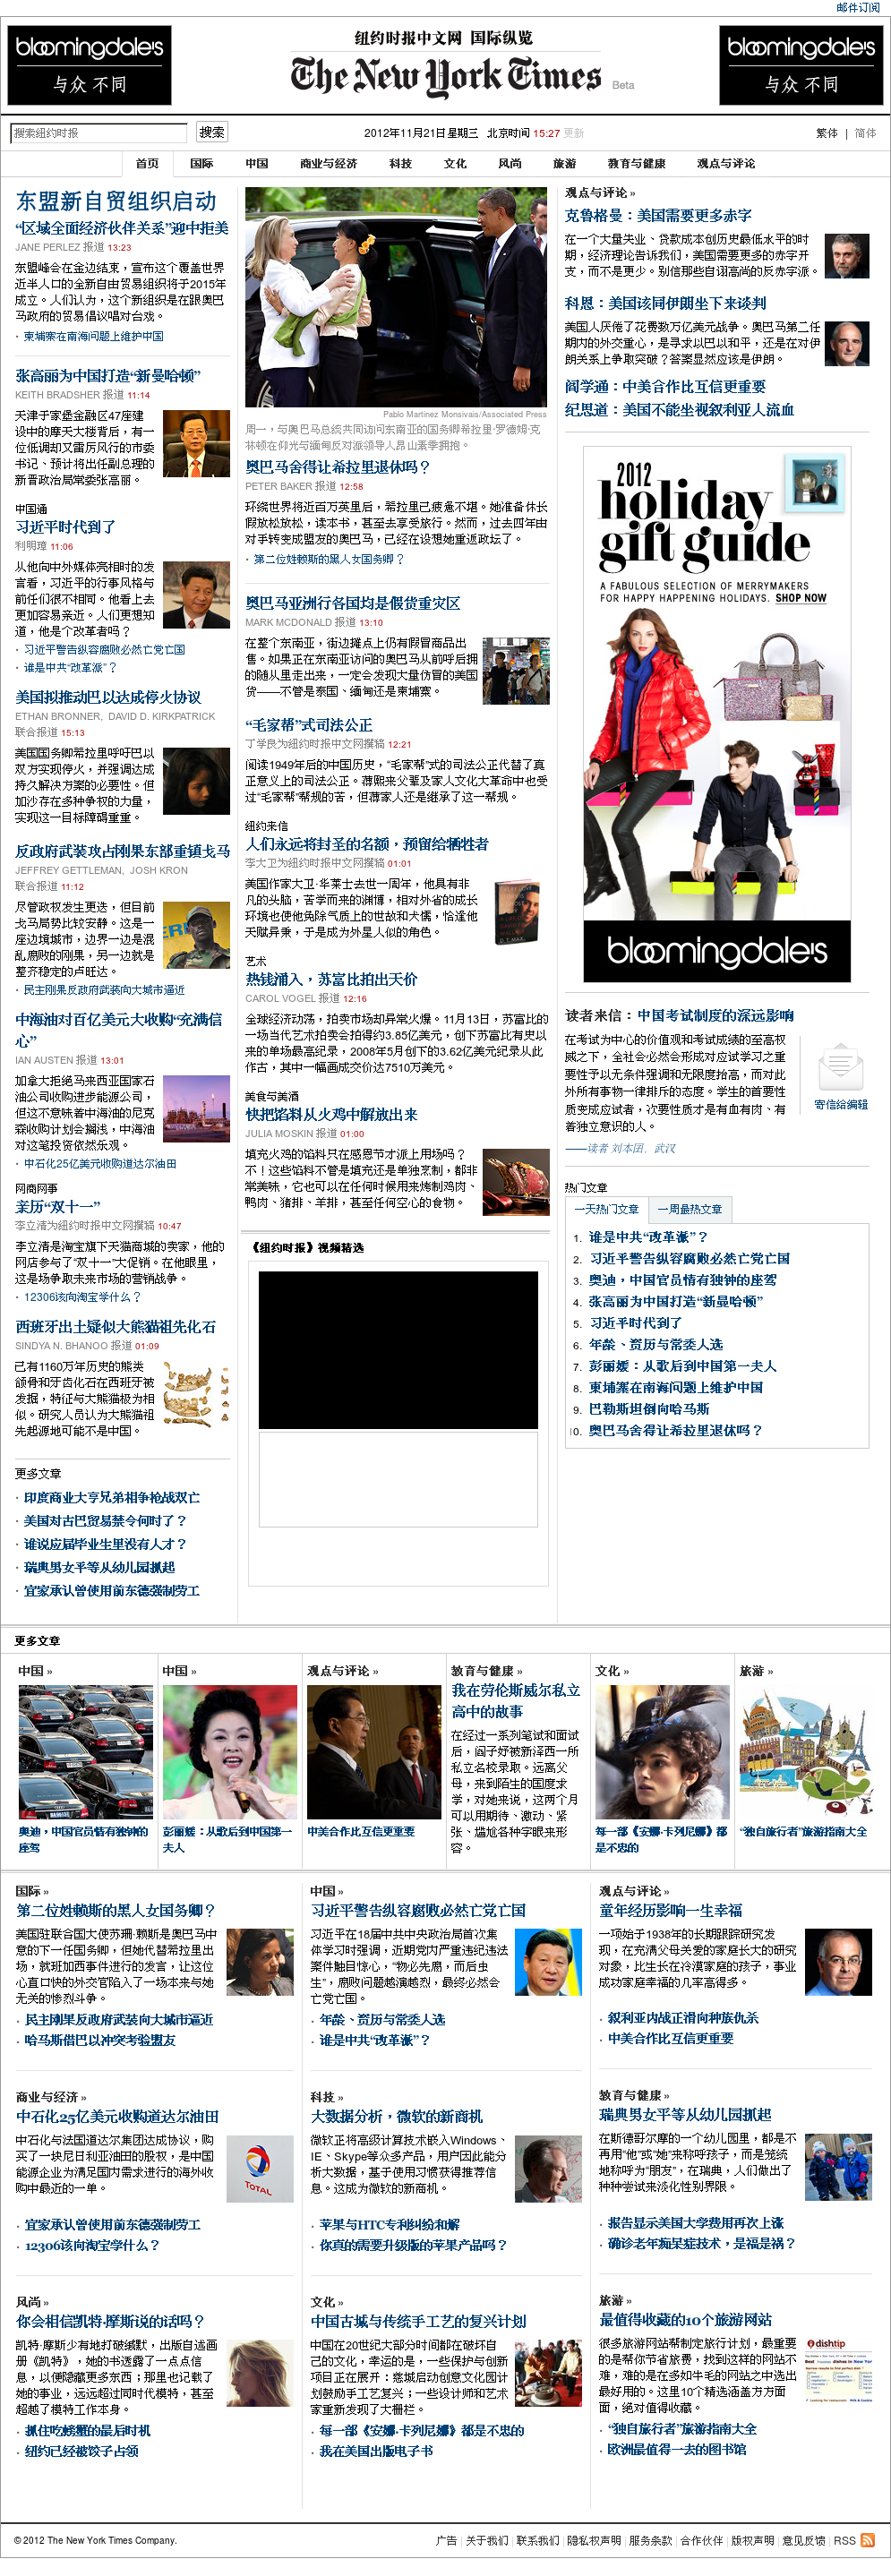 The New York Times (Chinese) at Wednesday Nov. 21, 2012, 8:20 a.m. UTC